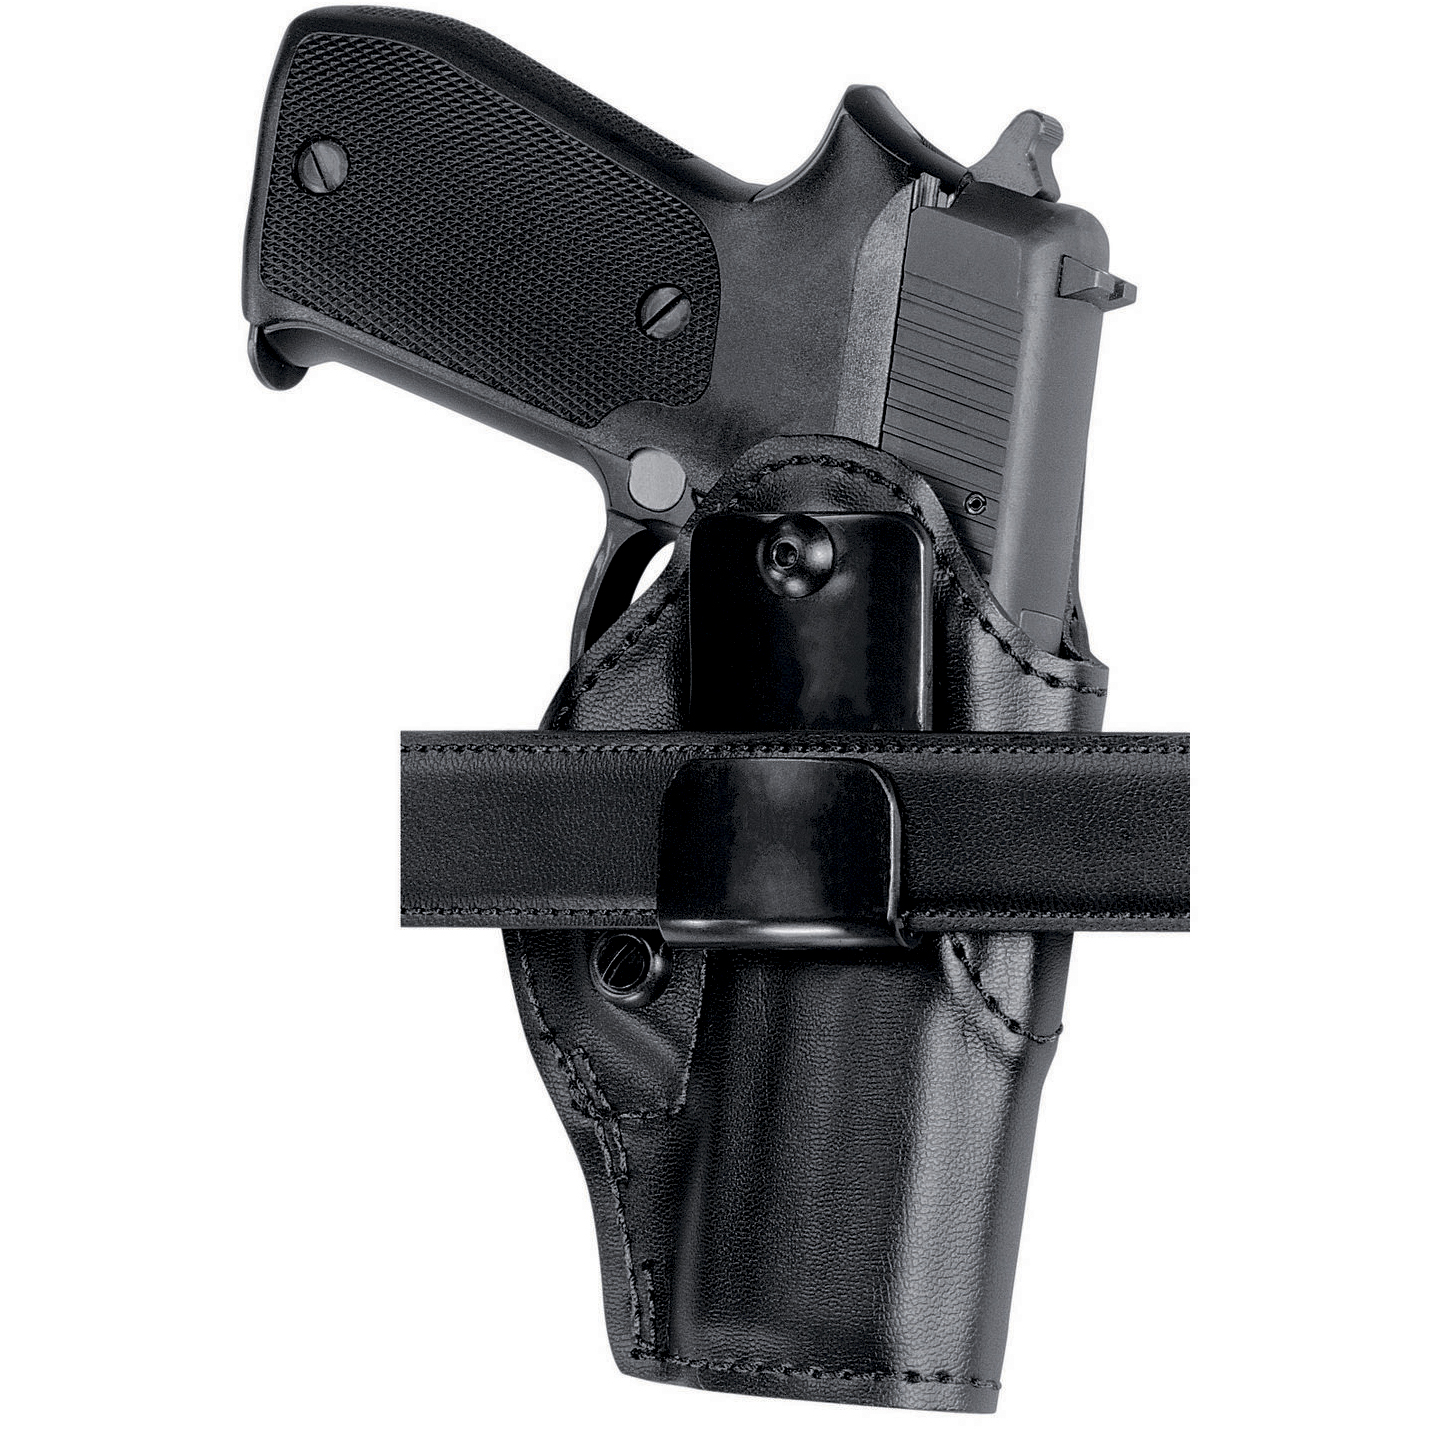 Safariland Model 27 Inside-the-Pants Concealment Holster, Ruger LC9